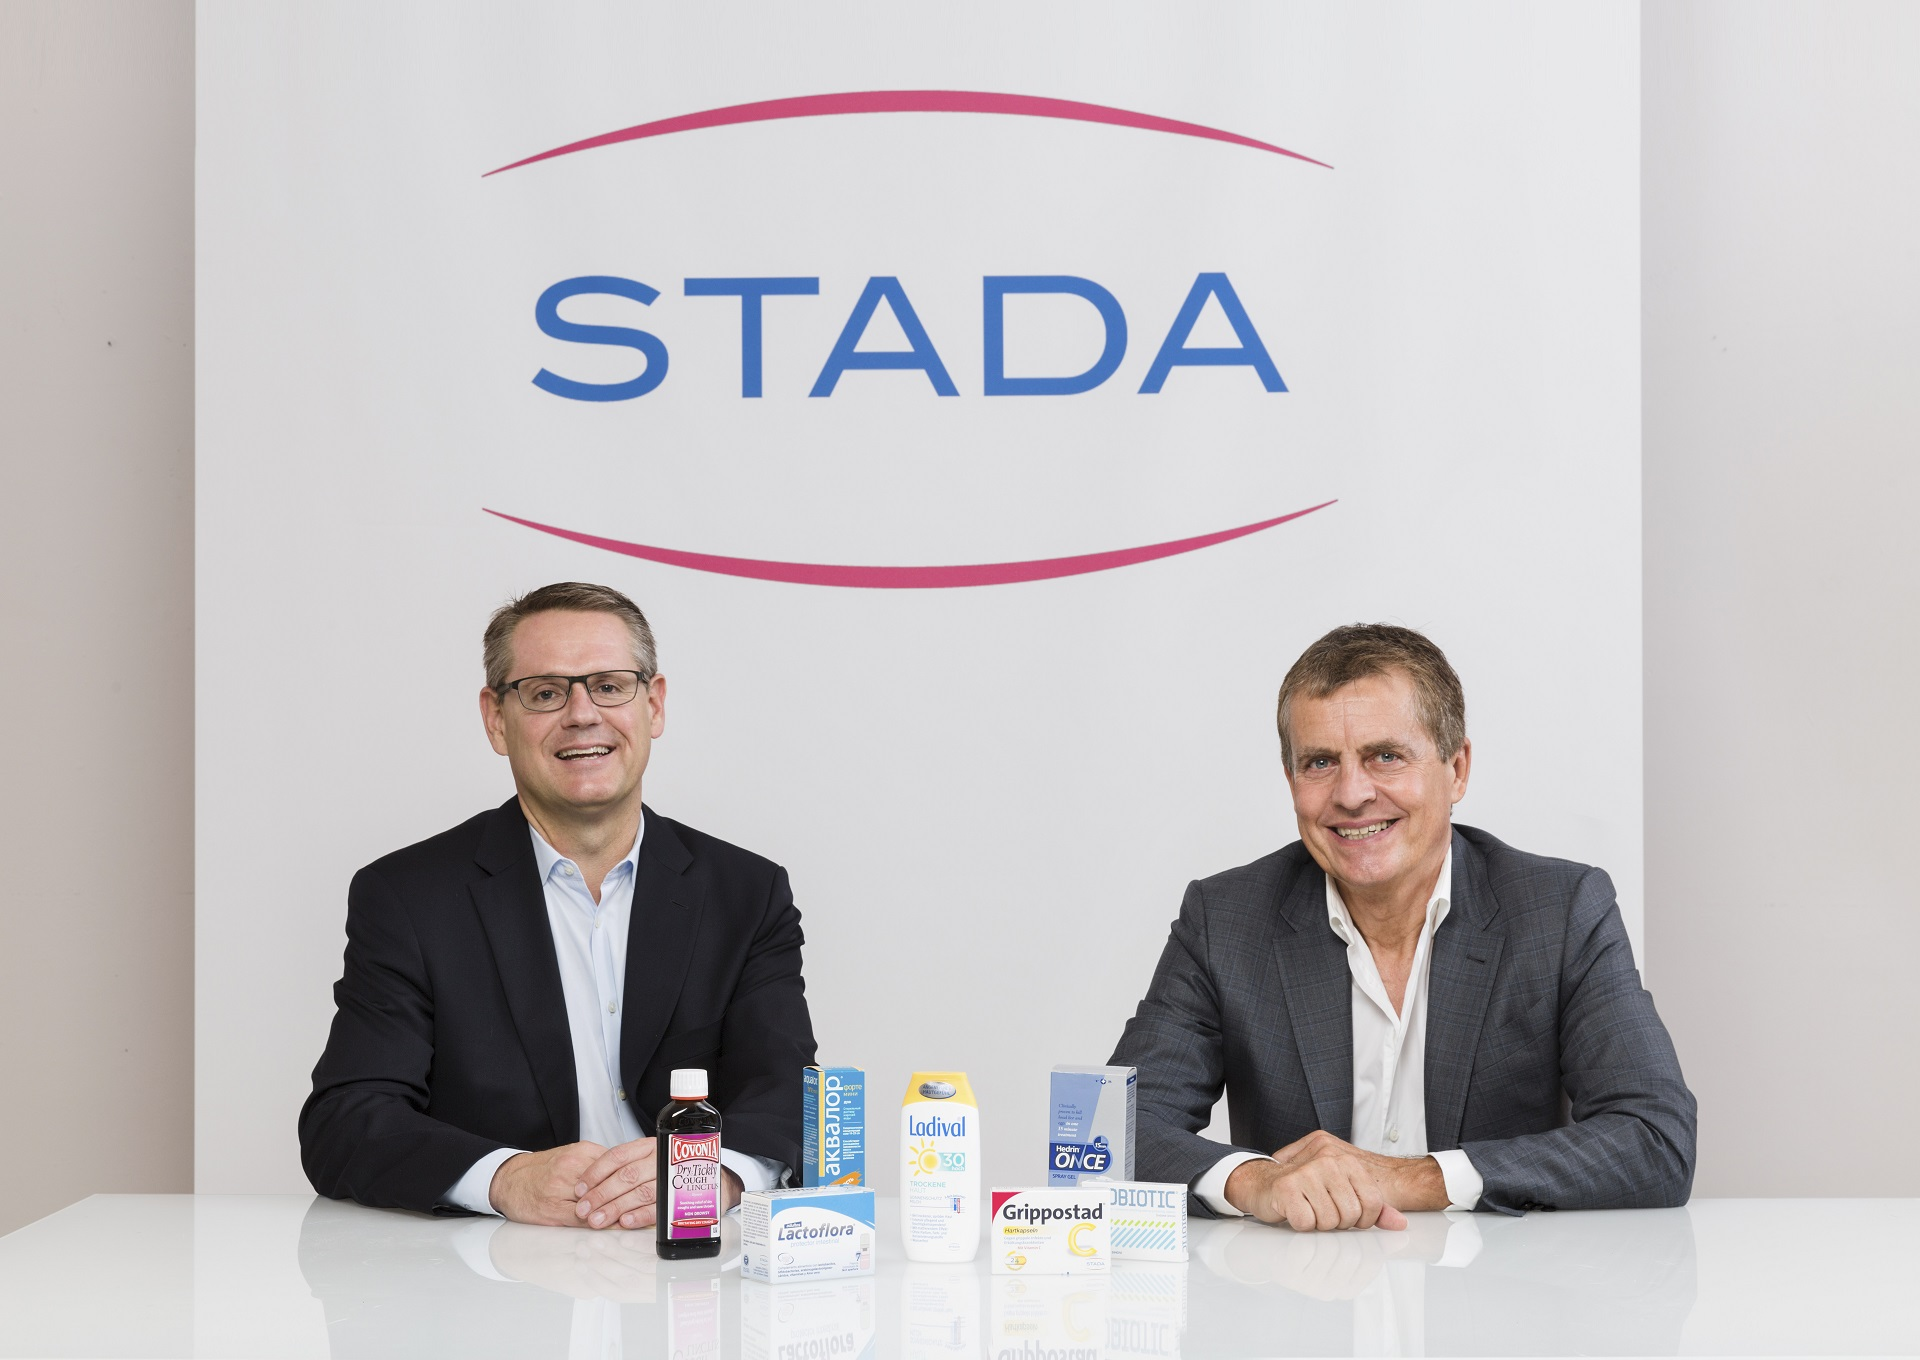 Peter Goldschmidt to succeed Claudio Albrecht as STADA's CEO